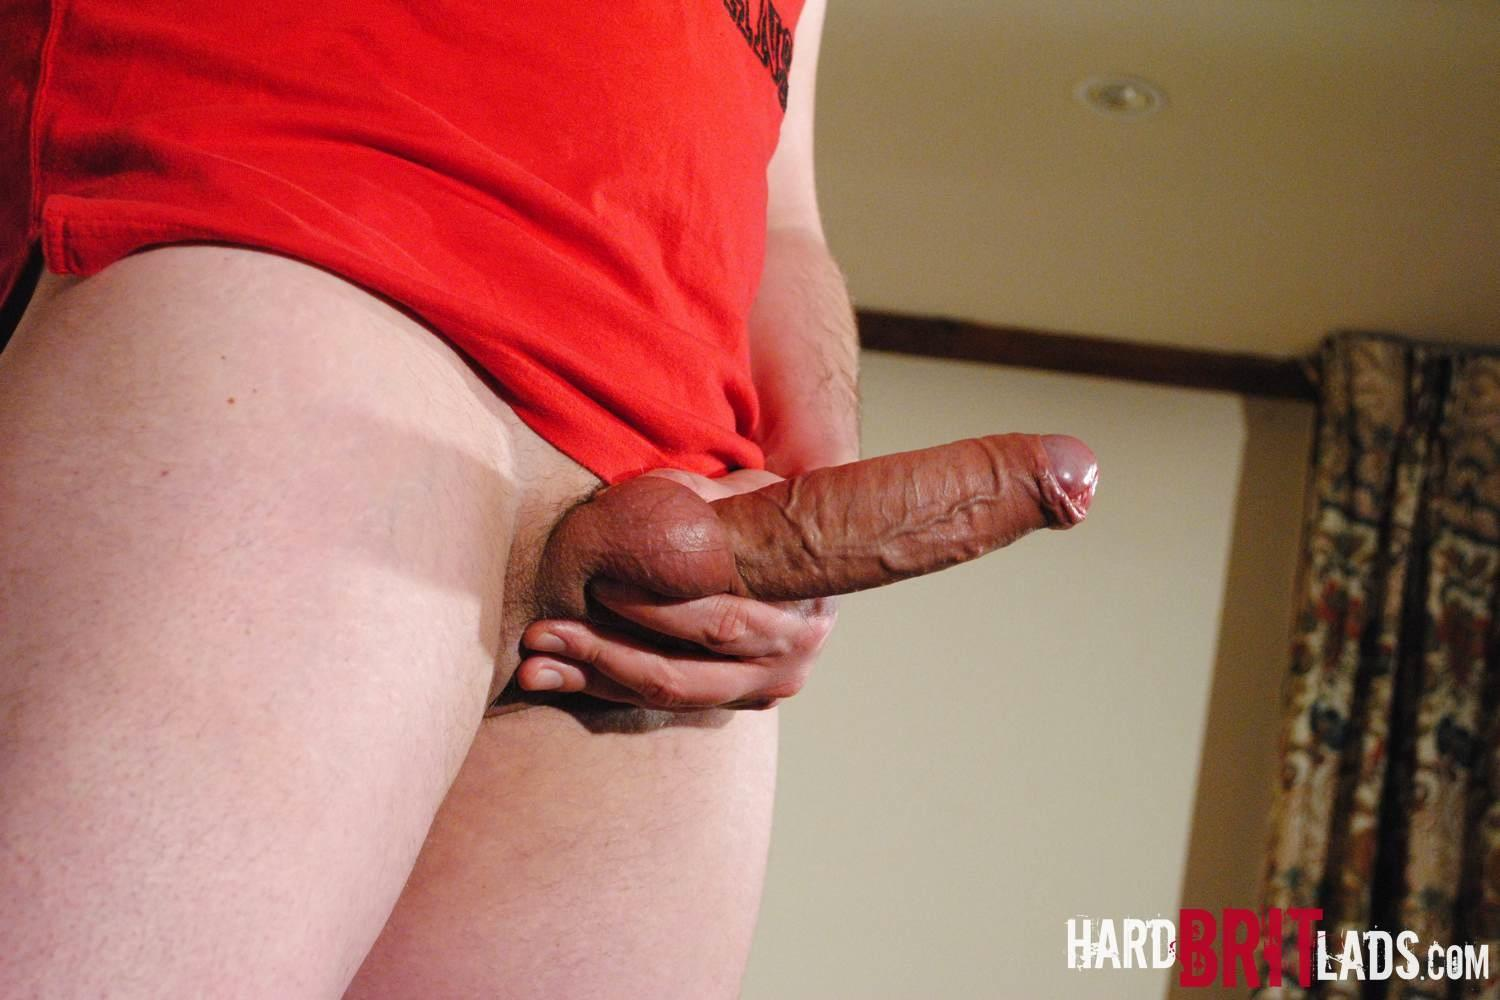 Hard Brit Lads Jon Bull British Skinhead With A Big Thick Uncut Cock Amateur Gay Porn 14 Straight British Skinhead Jerking His Big Thick Veiny Uncut Cock